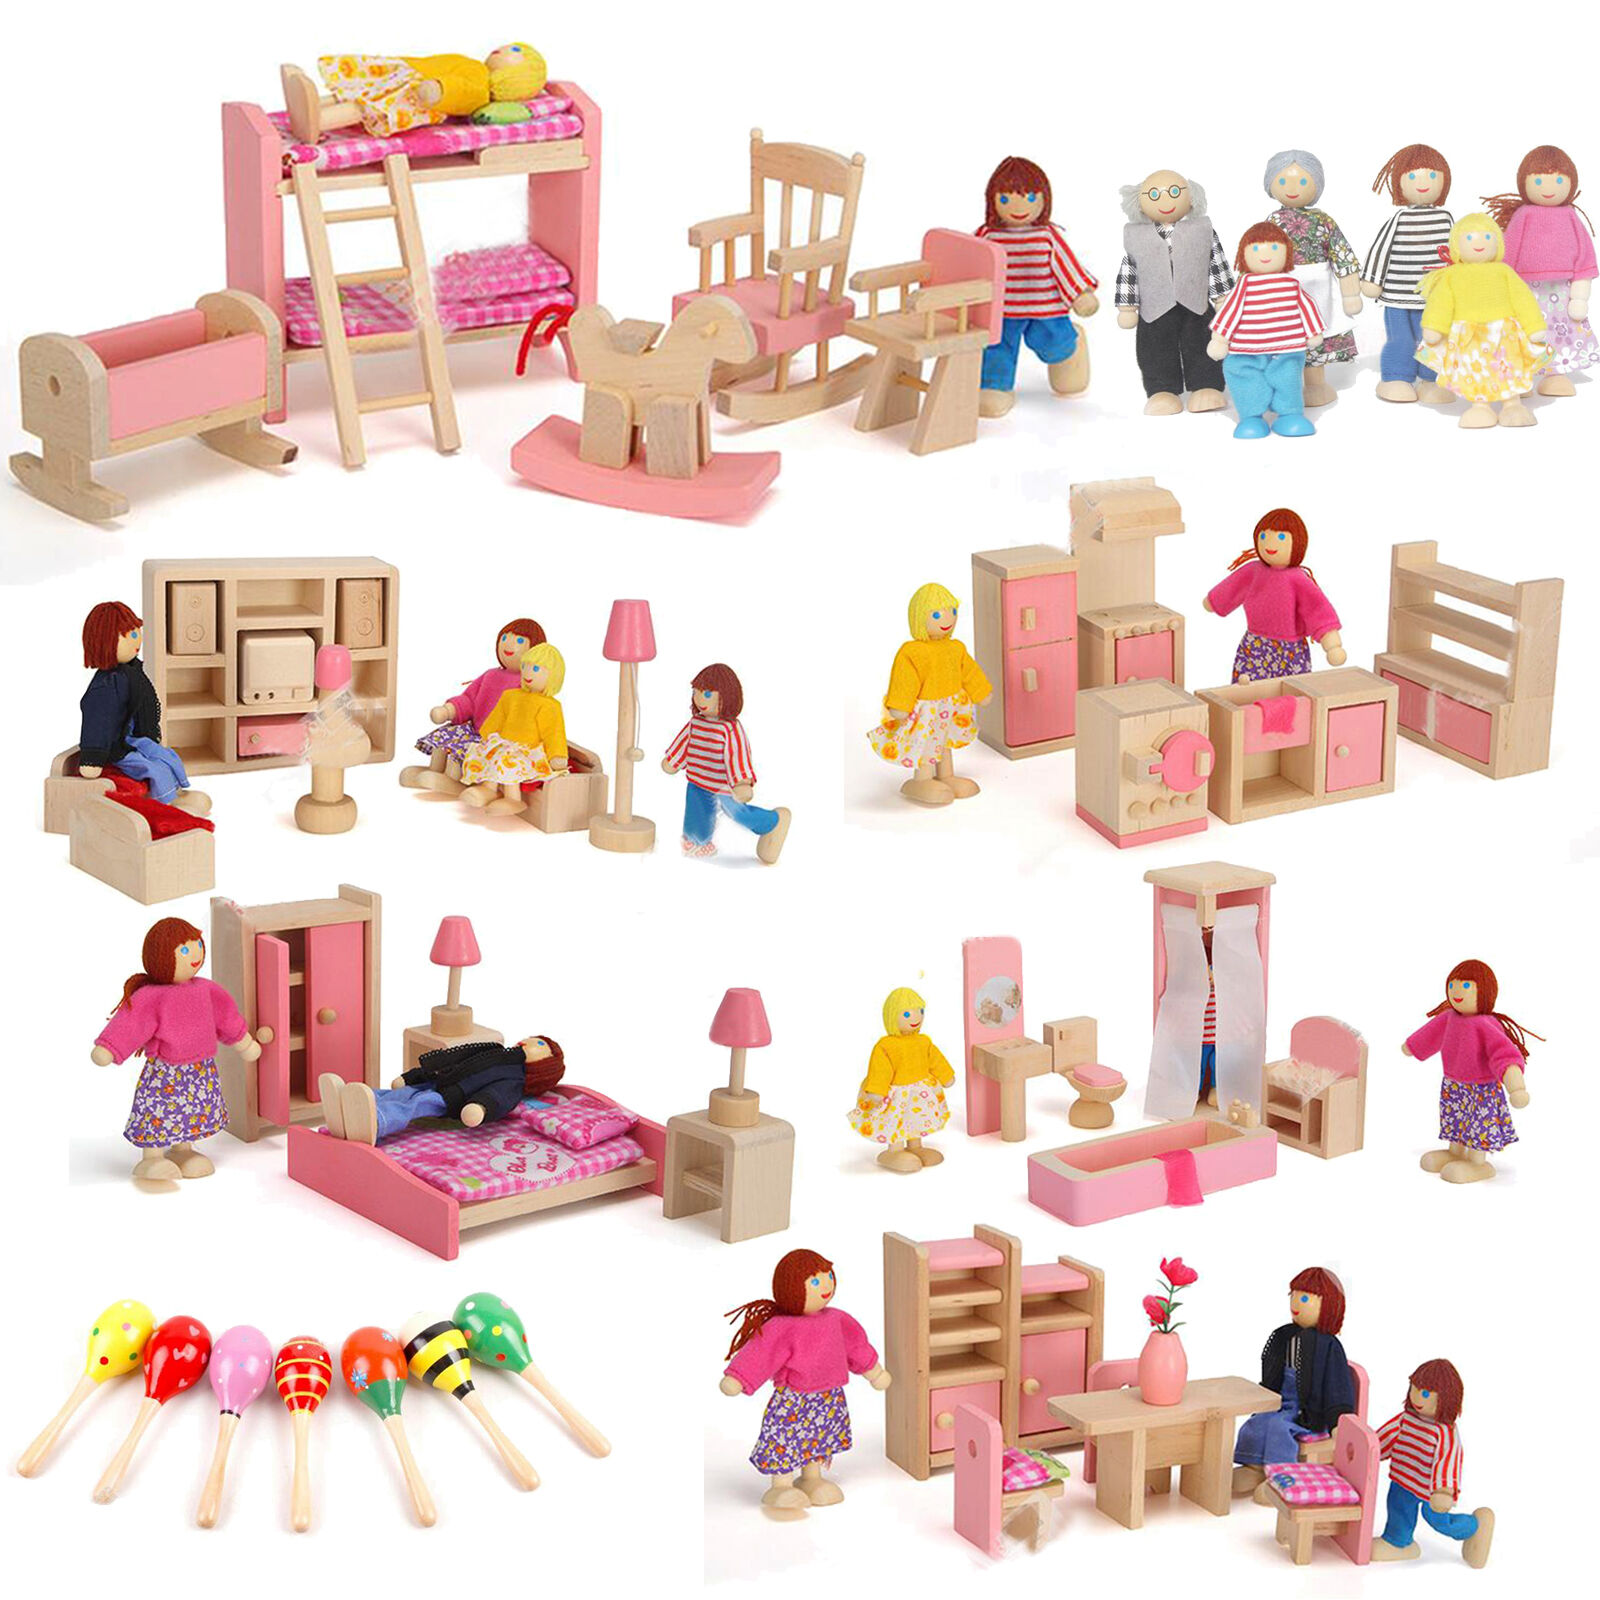 Wooden Furniture Room Set Dolls House Family Miniature Pretend Play Kids Toys 2